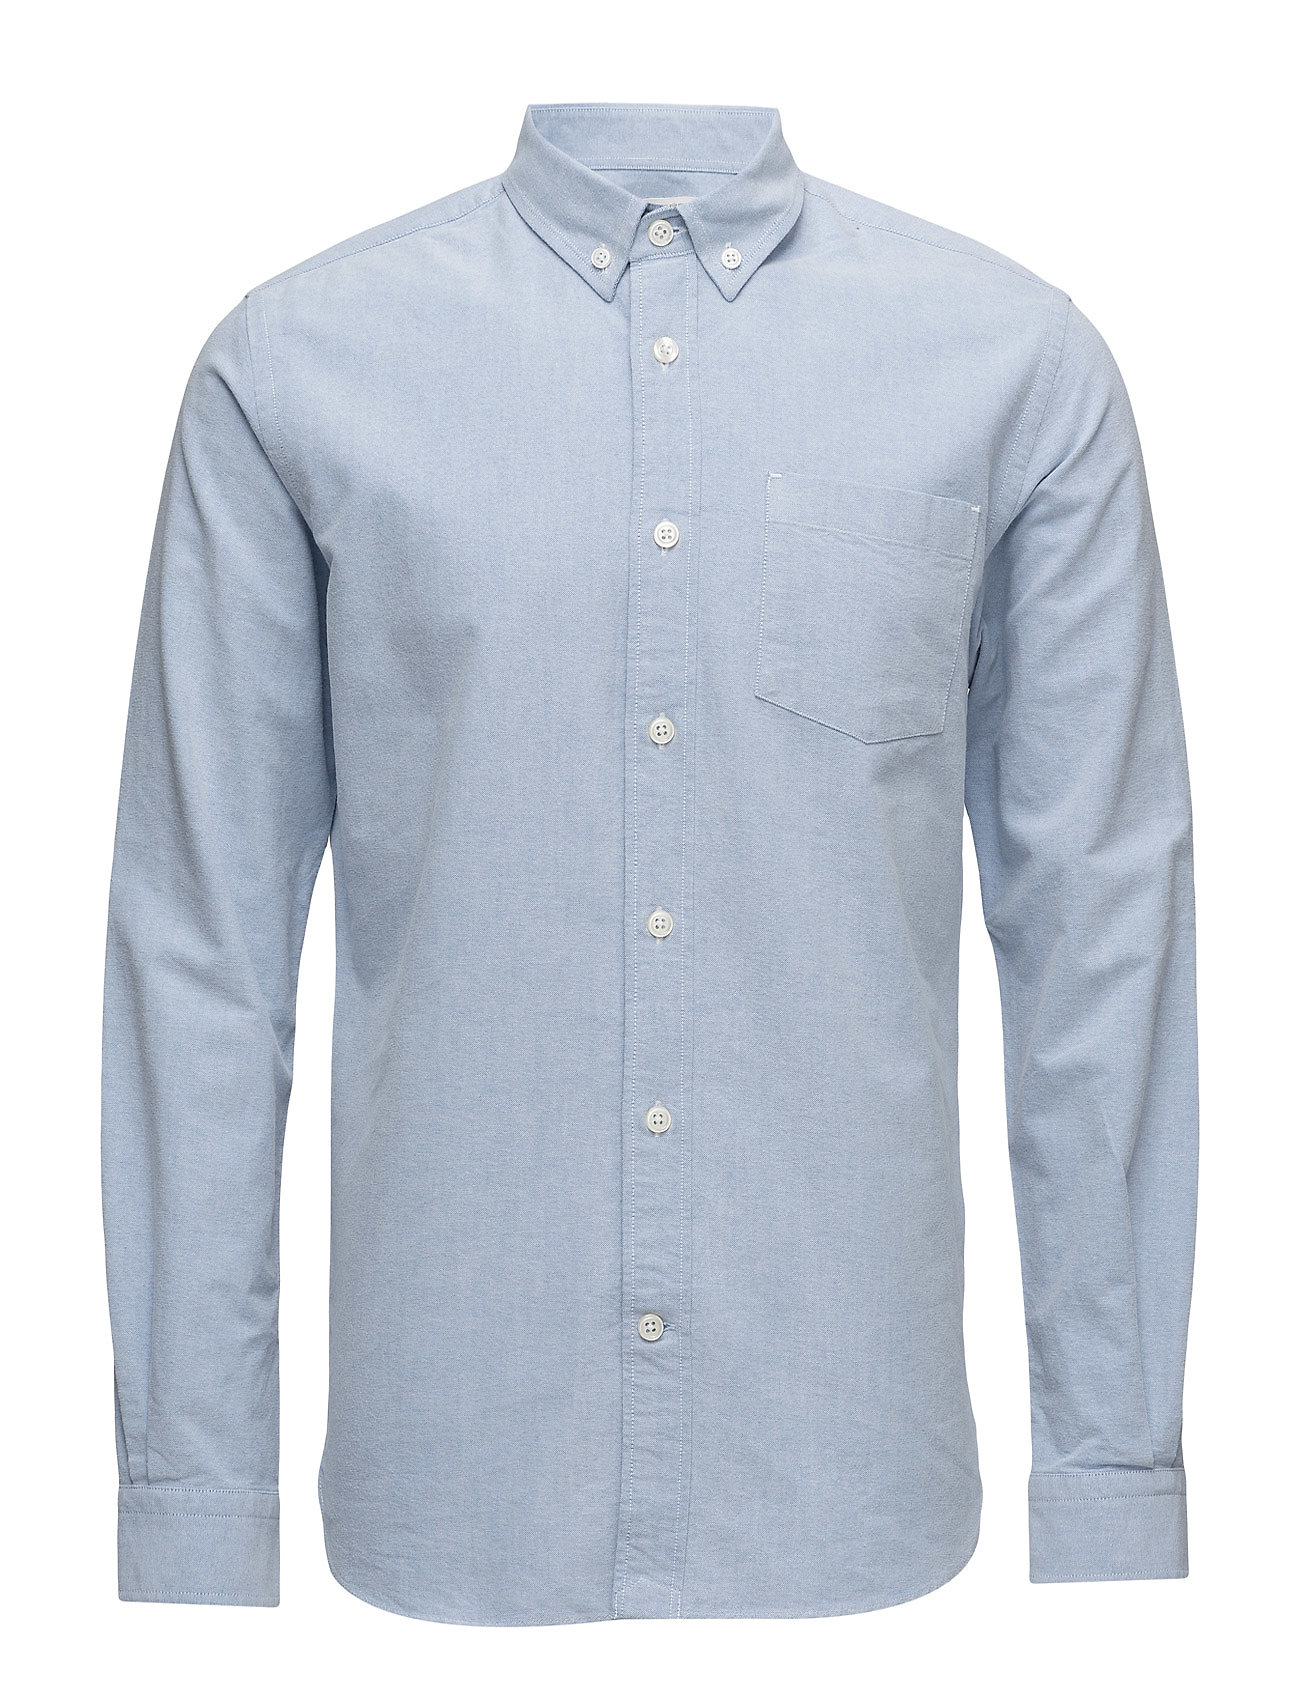 Knowledge Cotton Apparel Button Down Oxford Shirt - GOTS/Veg - LIMOGES